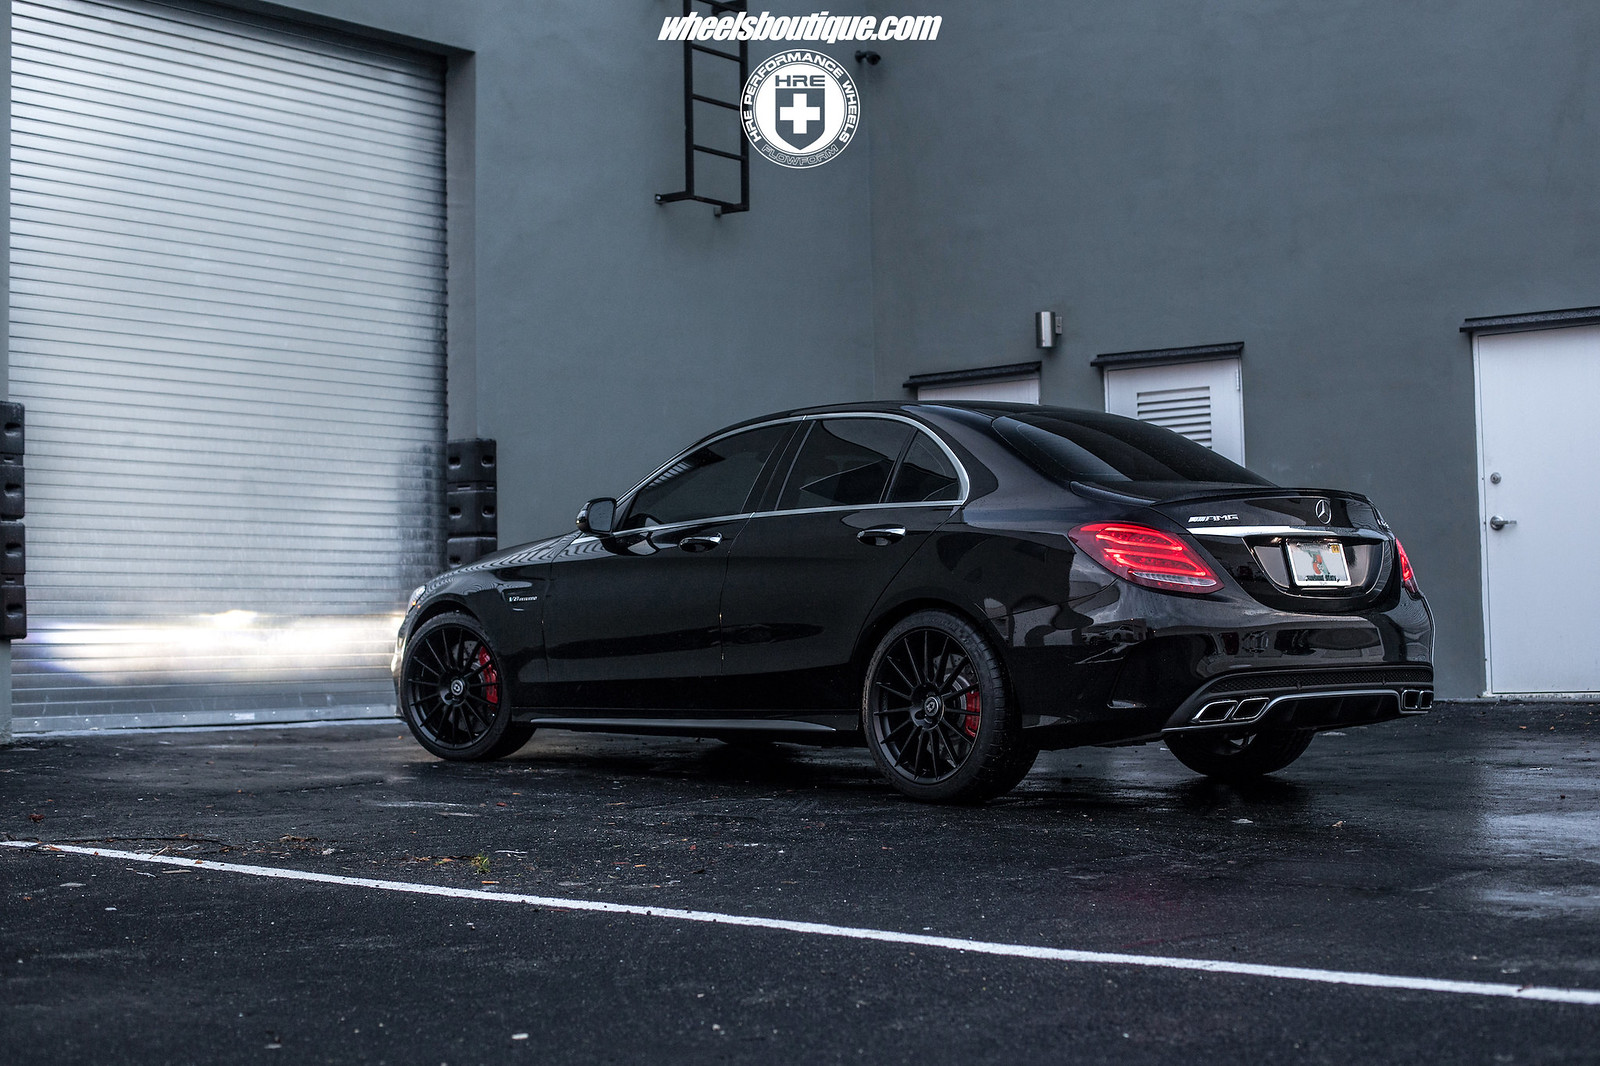 Wheels boutique mercedes benz c63 s amg x hre flowform ff15 for R h mercedes benz